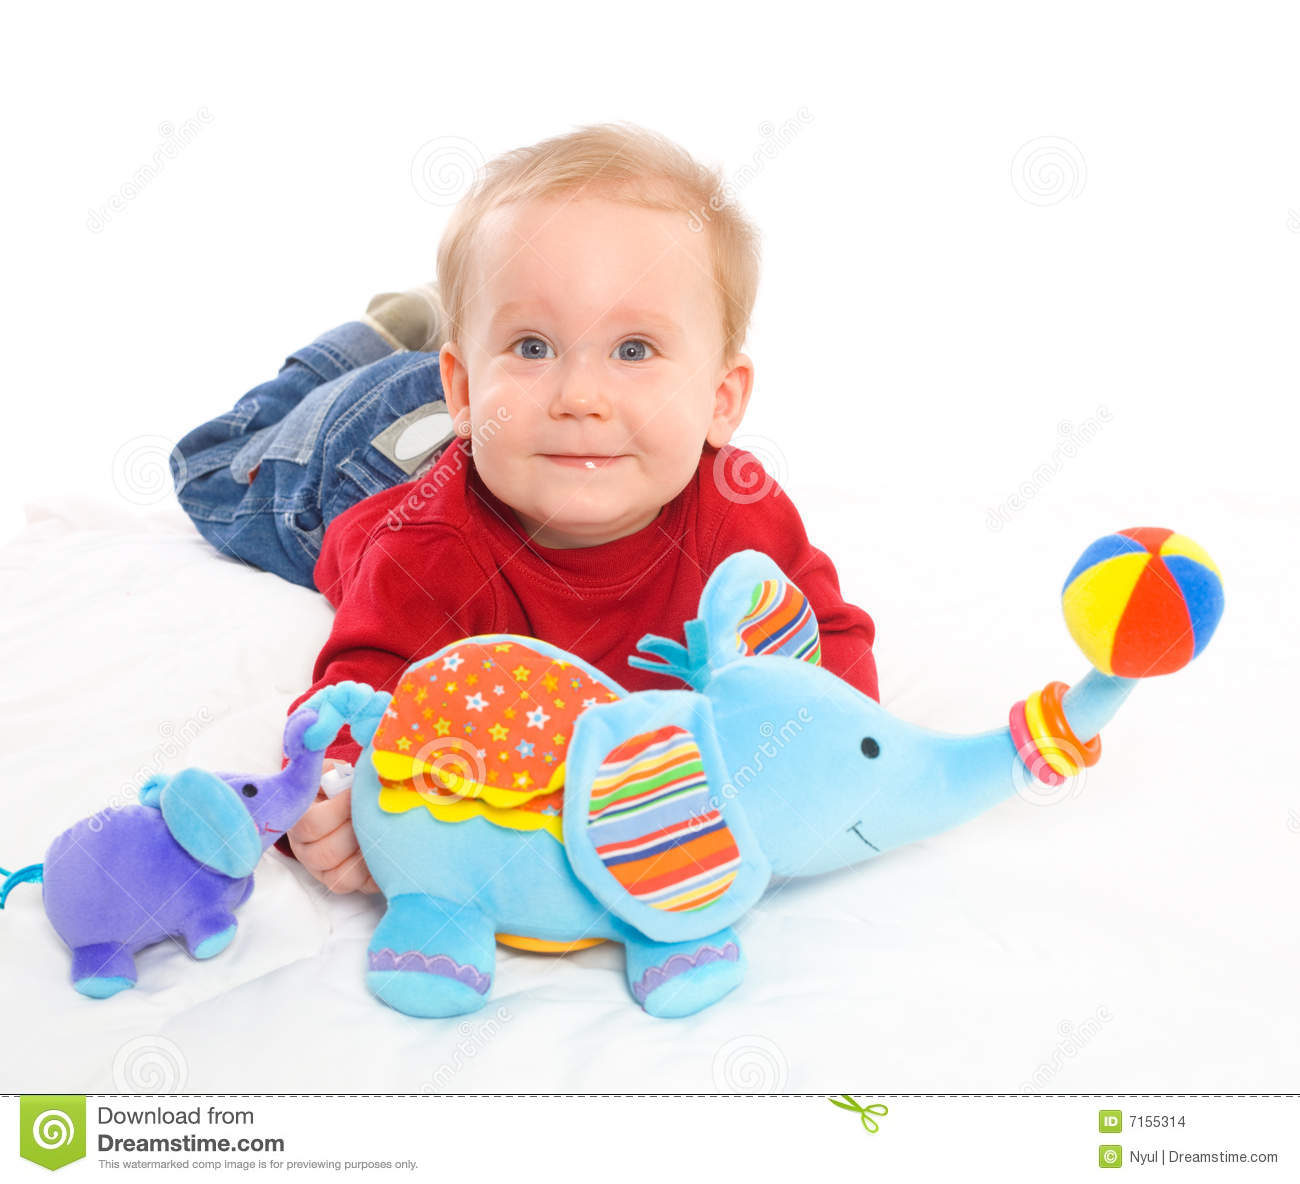 Boy Toys Baby : Baby boy playing with toys stock photo image of childhood